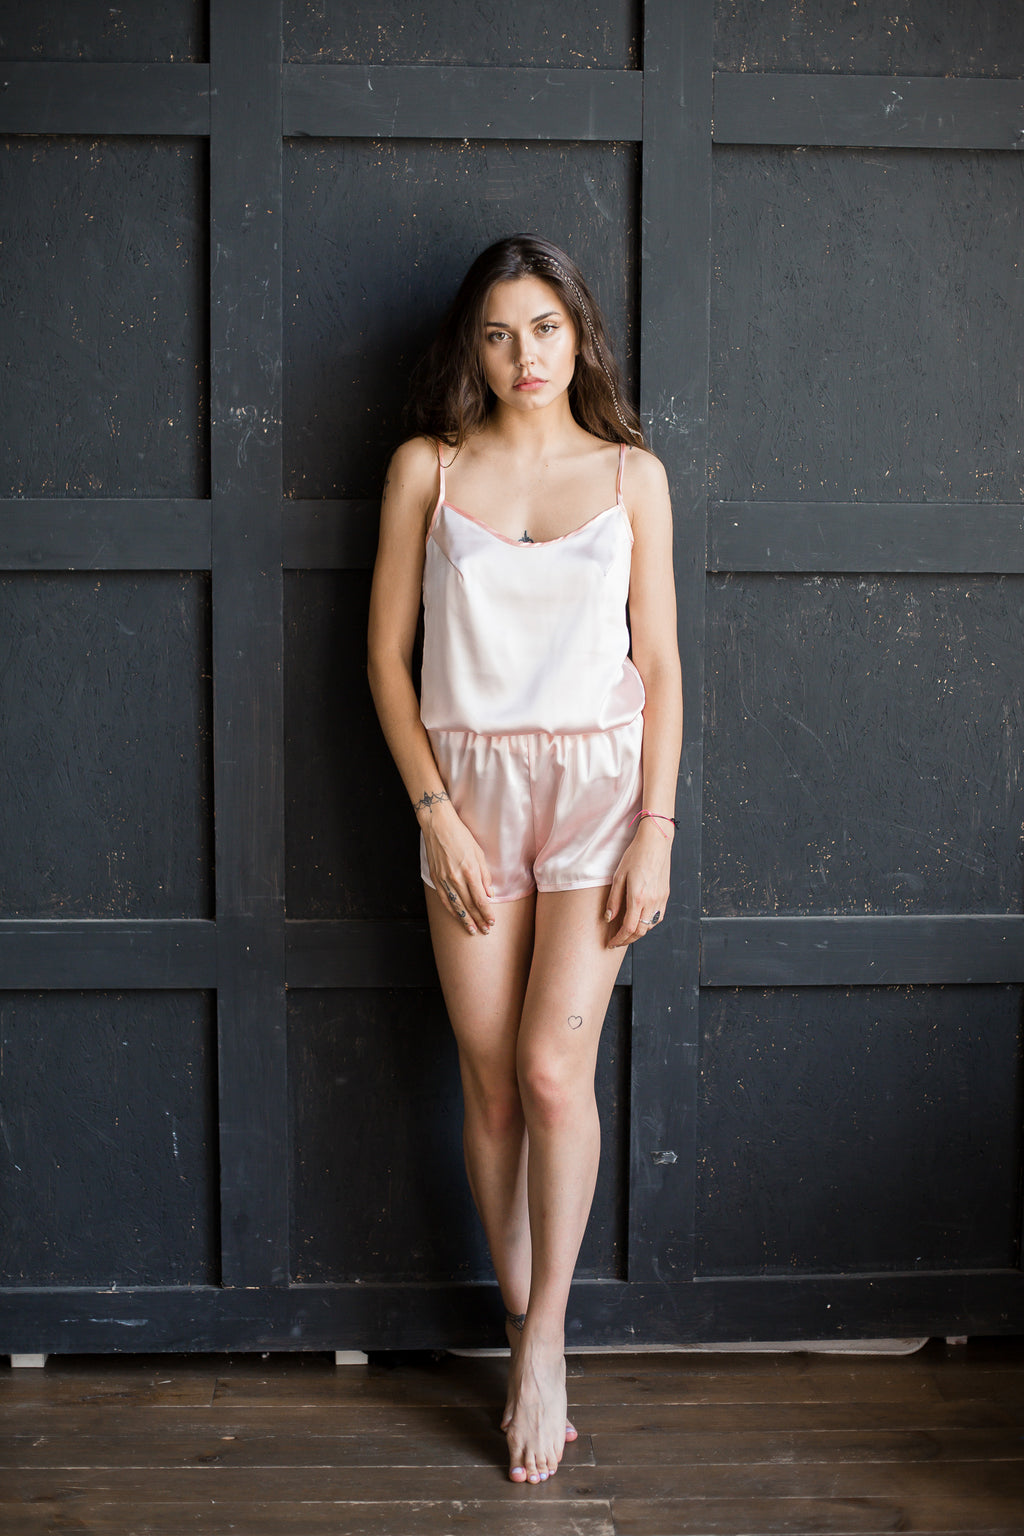 Satin Pajama Set (Top and Shorts) - Okiya Studio | Sleepwear, Homewear, Lingerie, Home Textiles